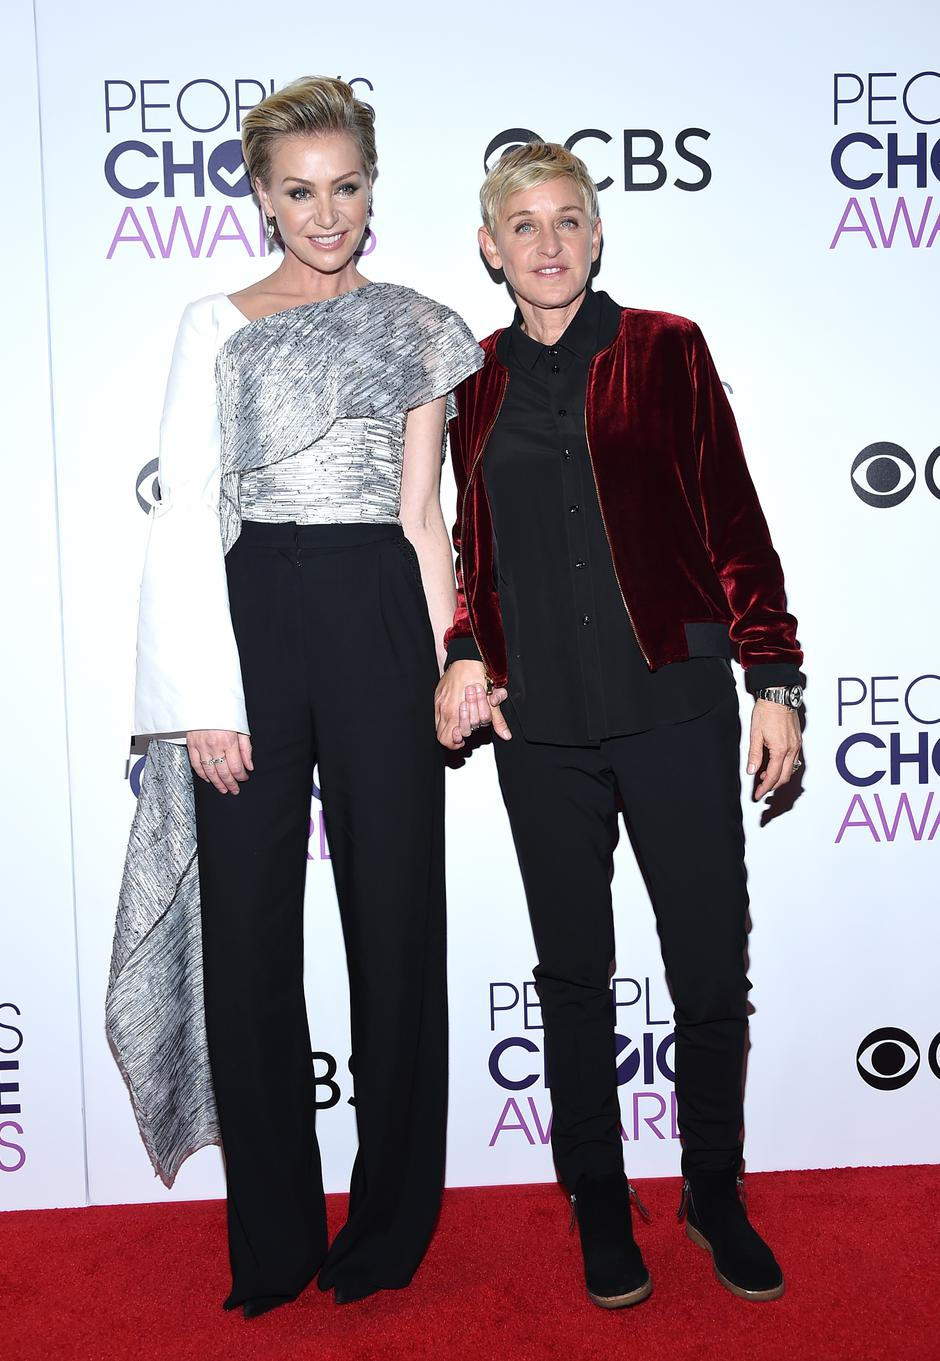 People's Choice Awards 2017 - Press Room - Los Angeles | Autor: OConnor-Arroyo/Press Association/PIXSELL/Promo